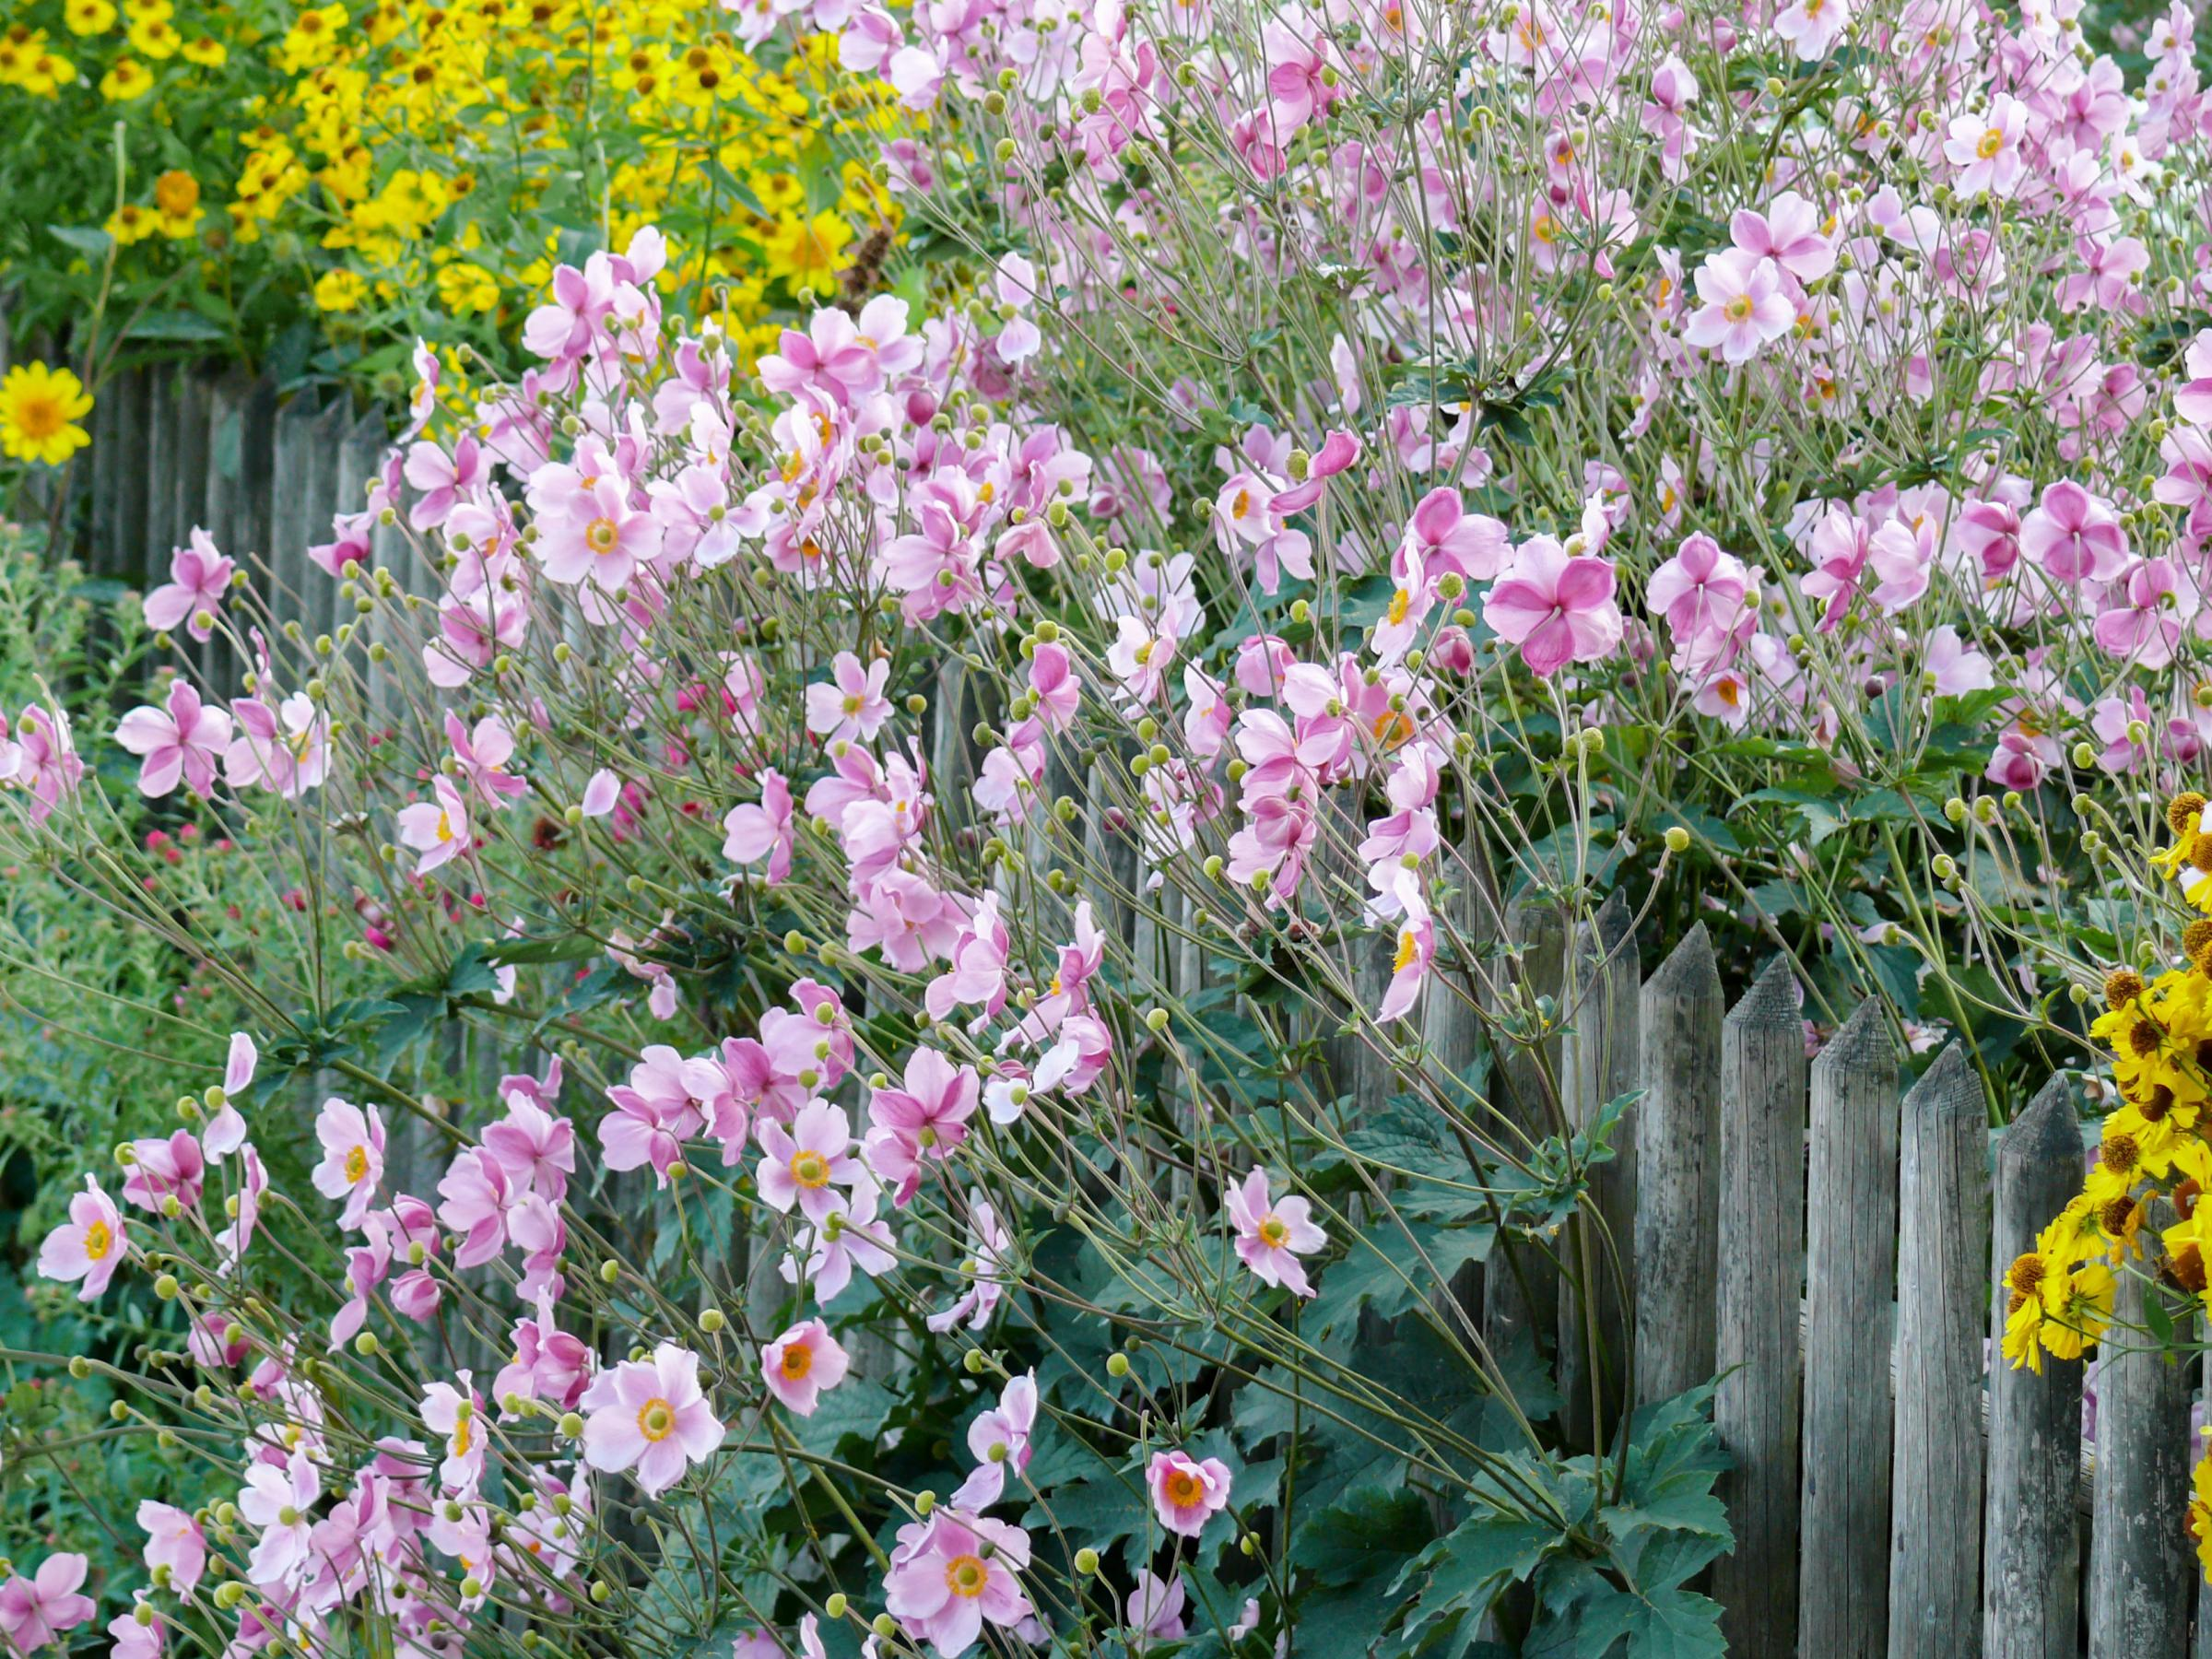 Gardening: Four common plants which may want to take over your garden